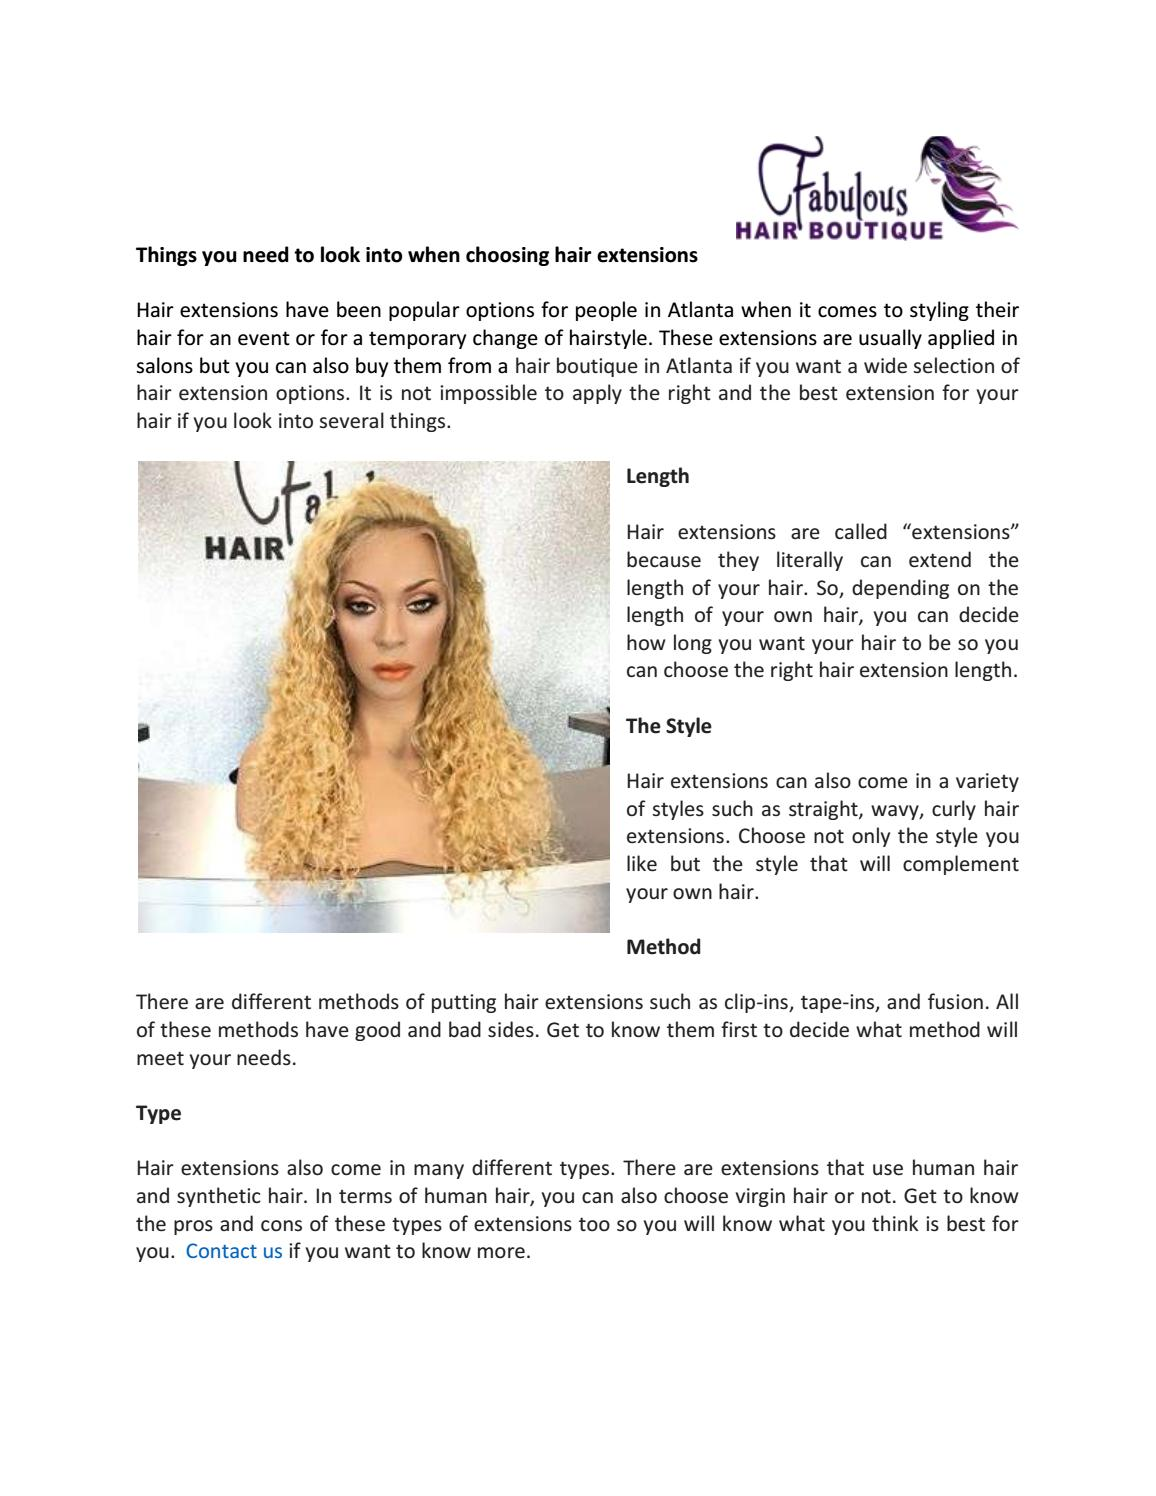 Things You Need To Look Into When Choosing Hair Extensions By Dillip